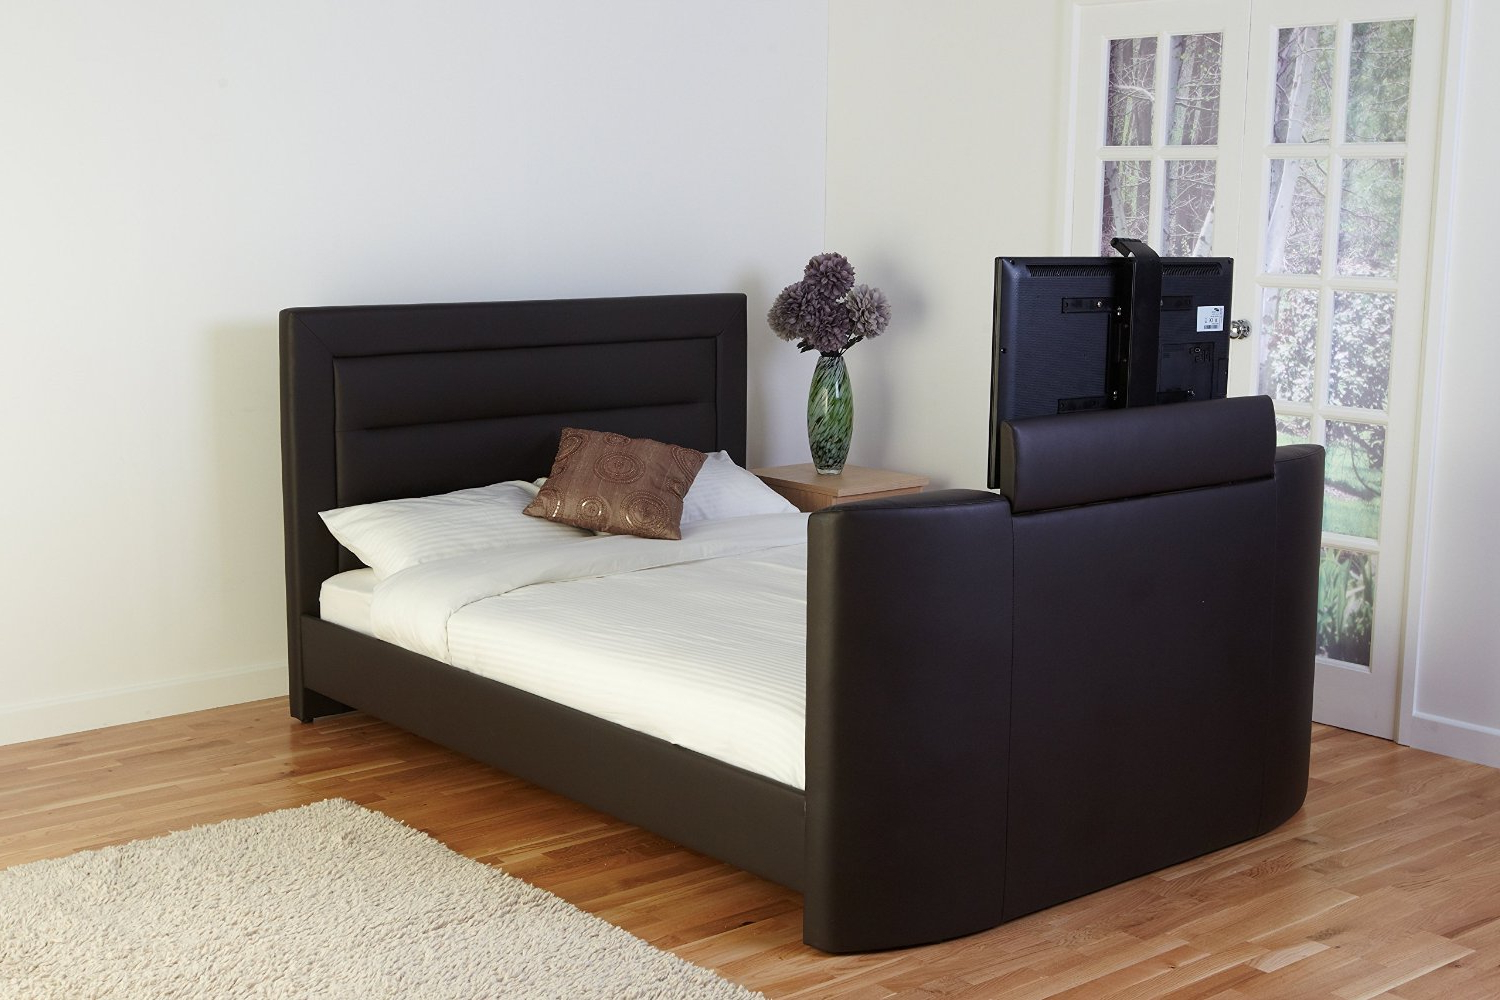 Qosy In Most Popular 32 Inch Tv Beds (View 17 of 20)